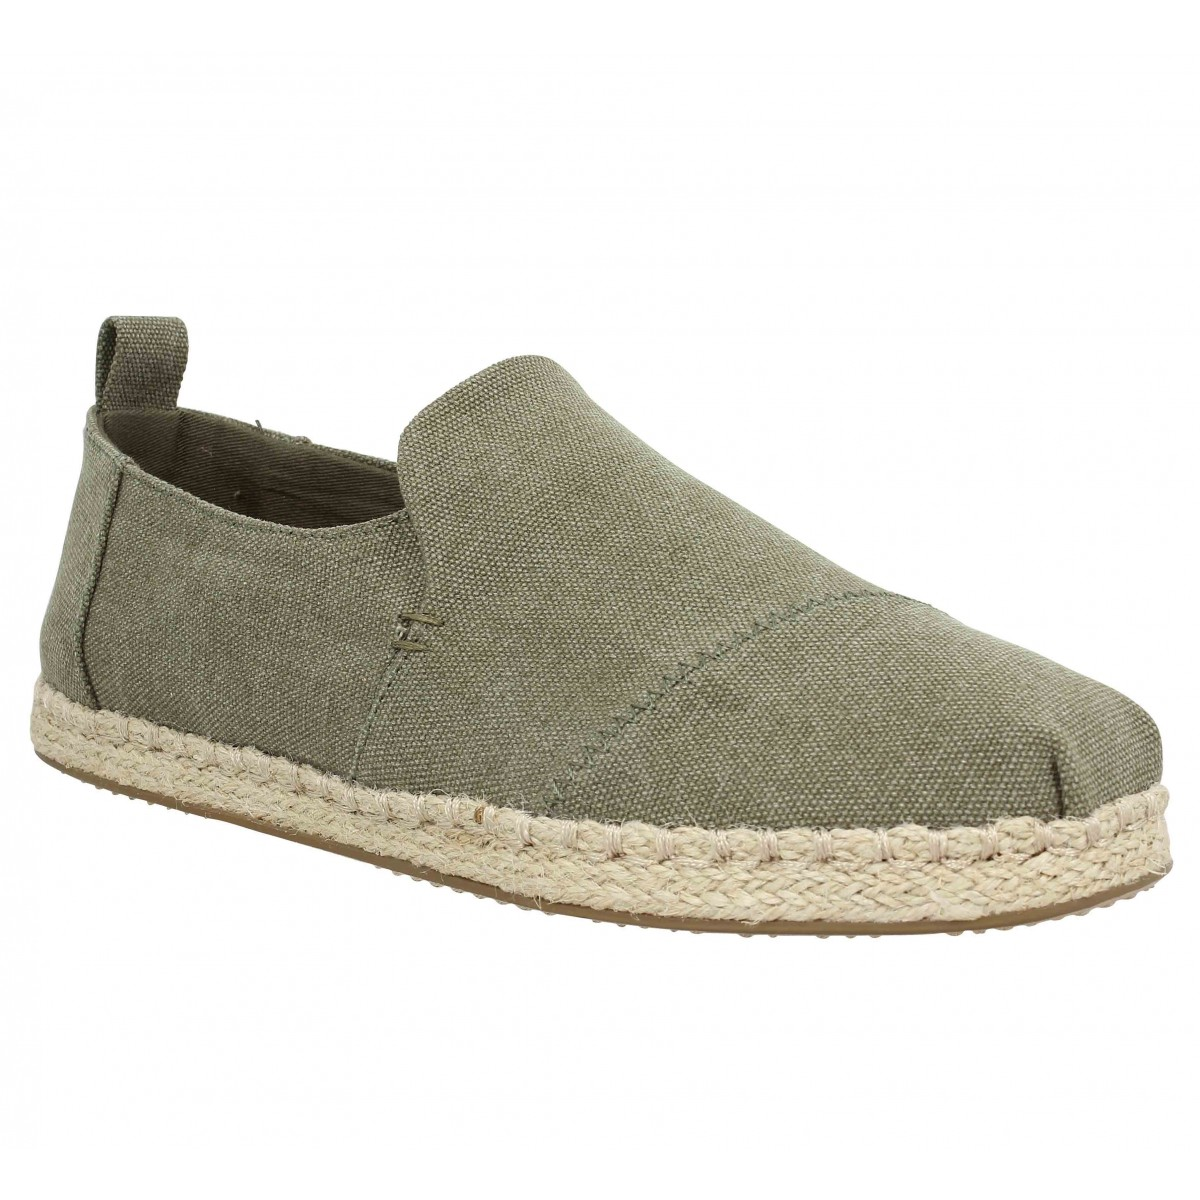 Espadrilles TOMS Deconstructed Alpargata Rope toile Homme Olive